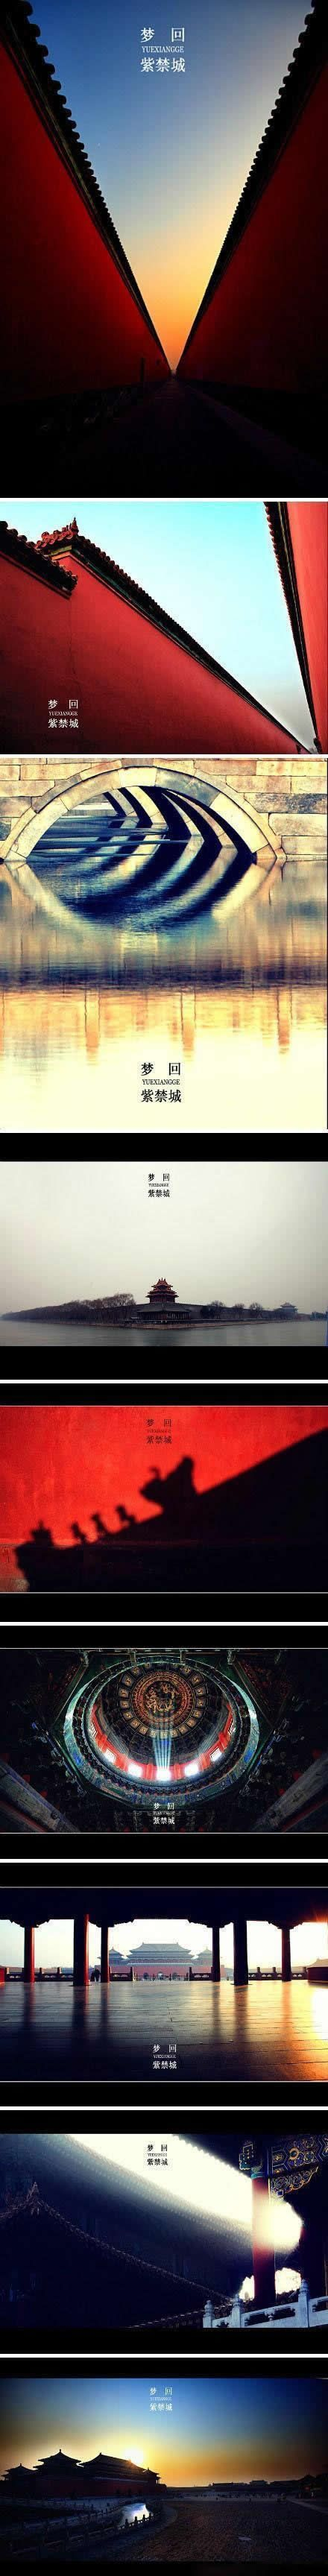 Forbidden City, Beijing, China 紫禁城